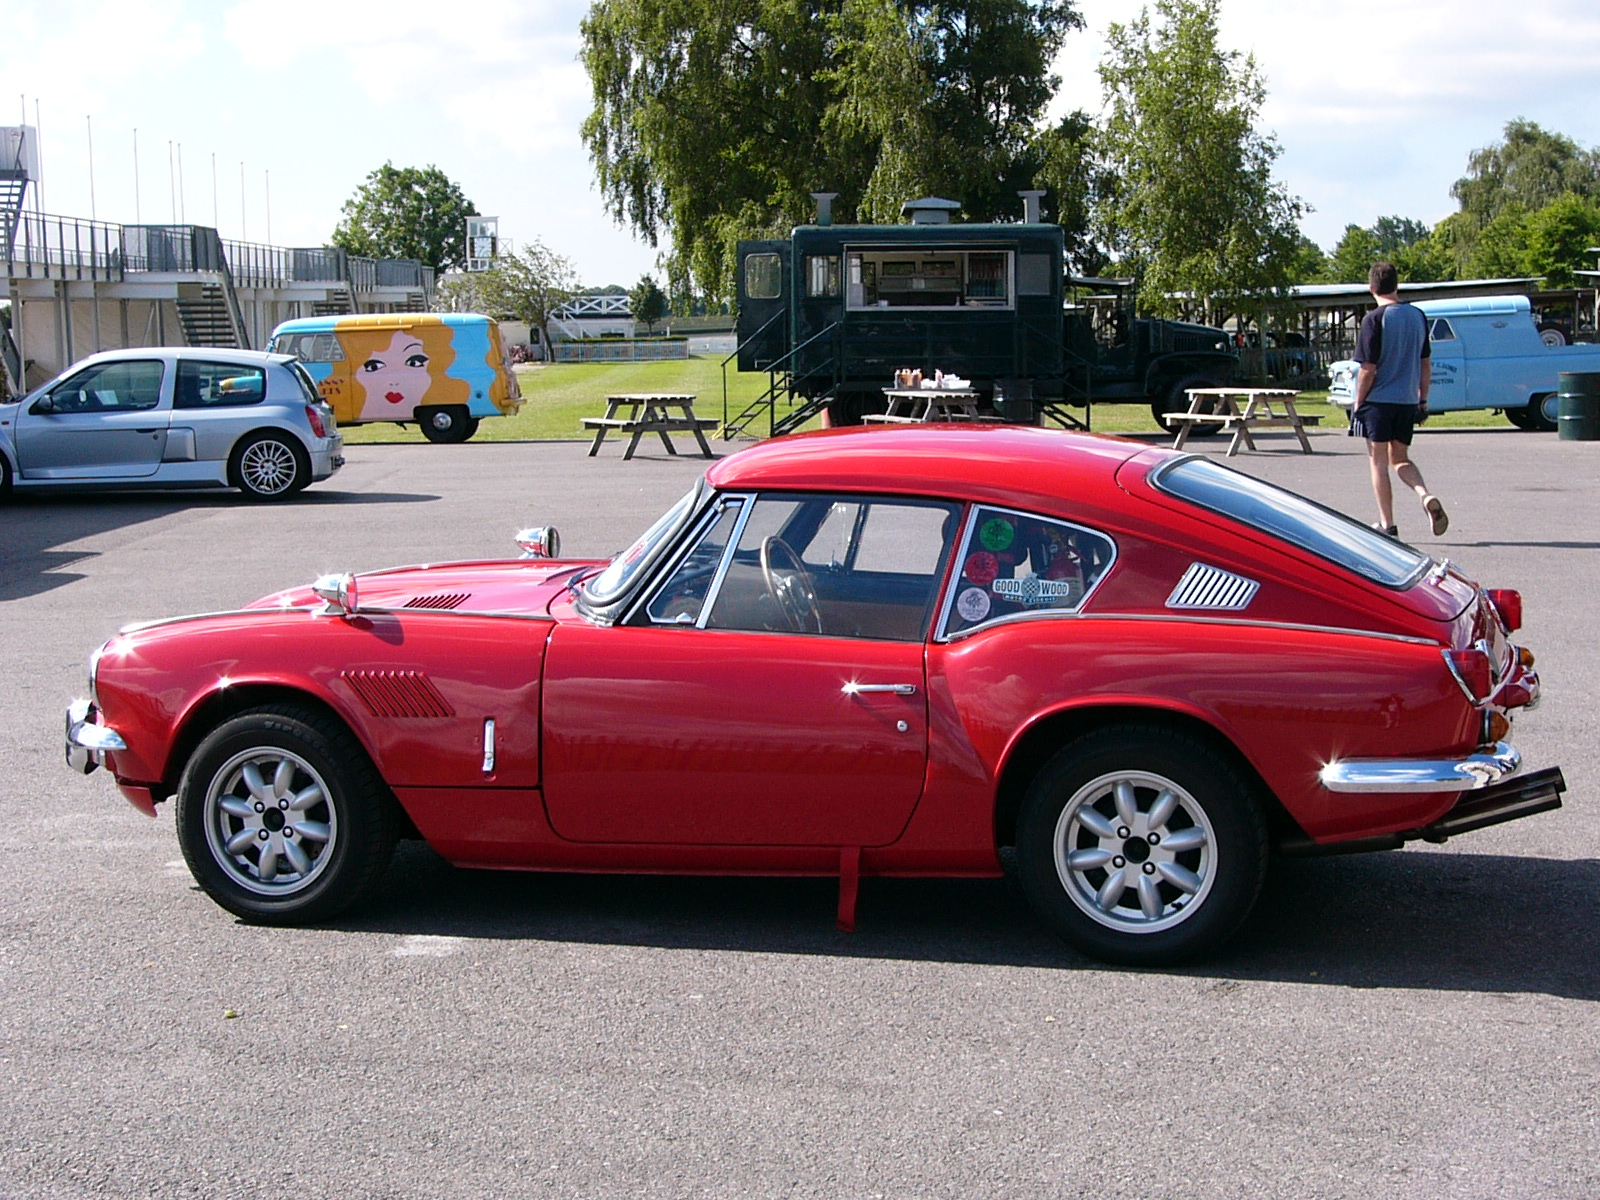 1971 Triumph Gt6 Vintage Race Car For Sale